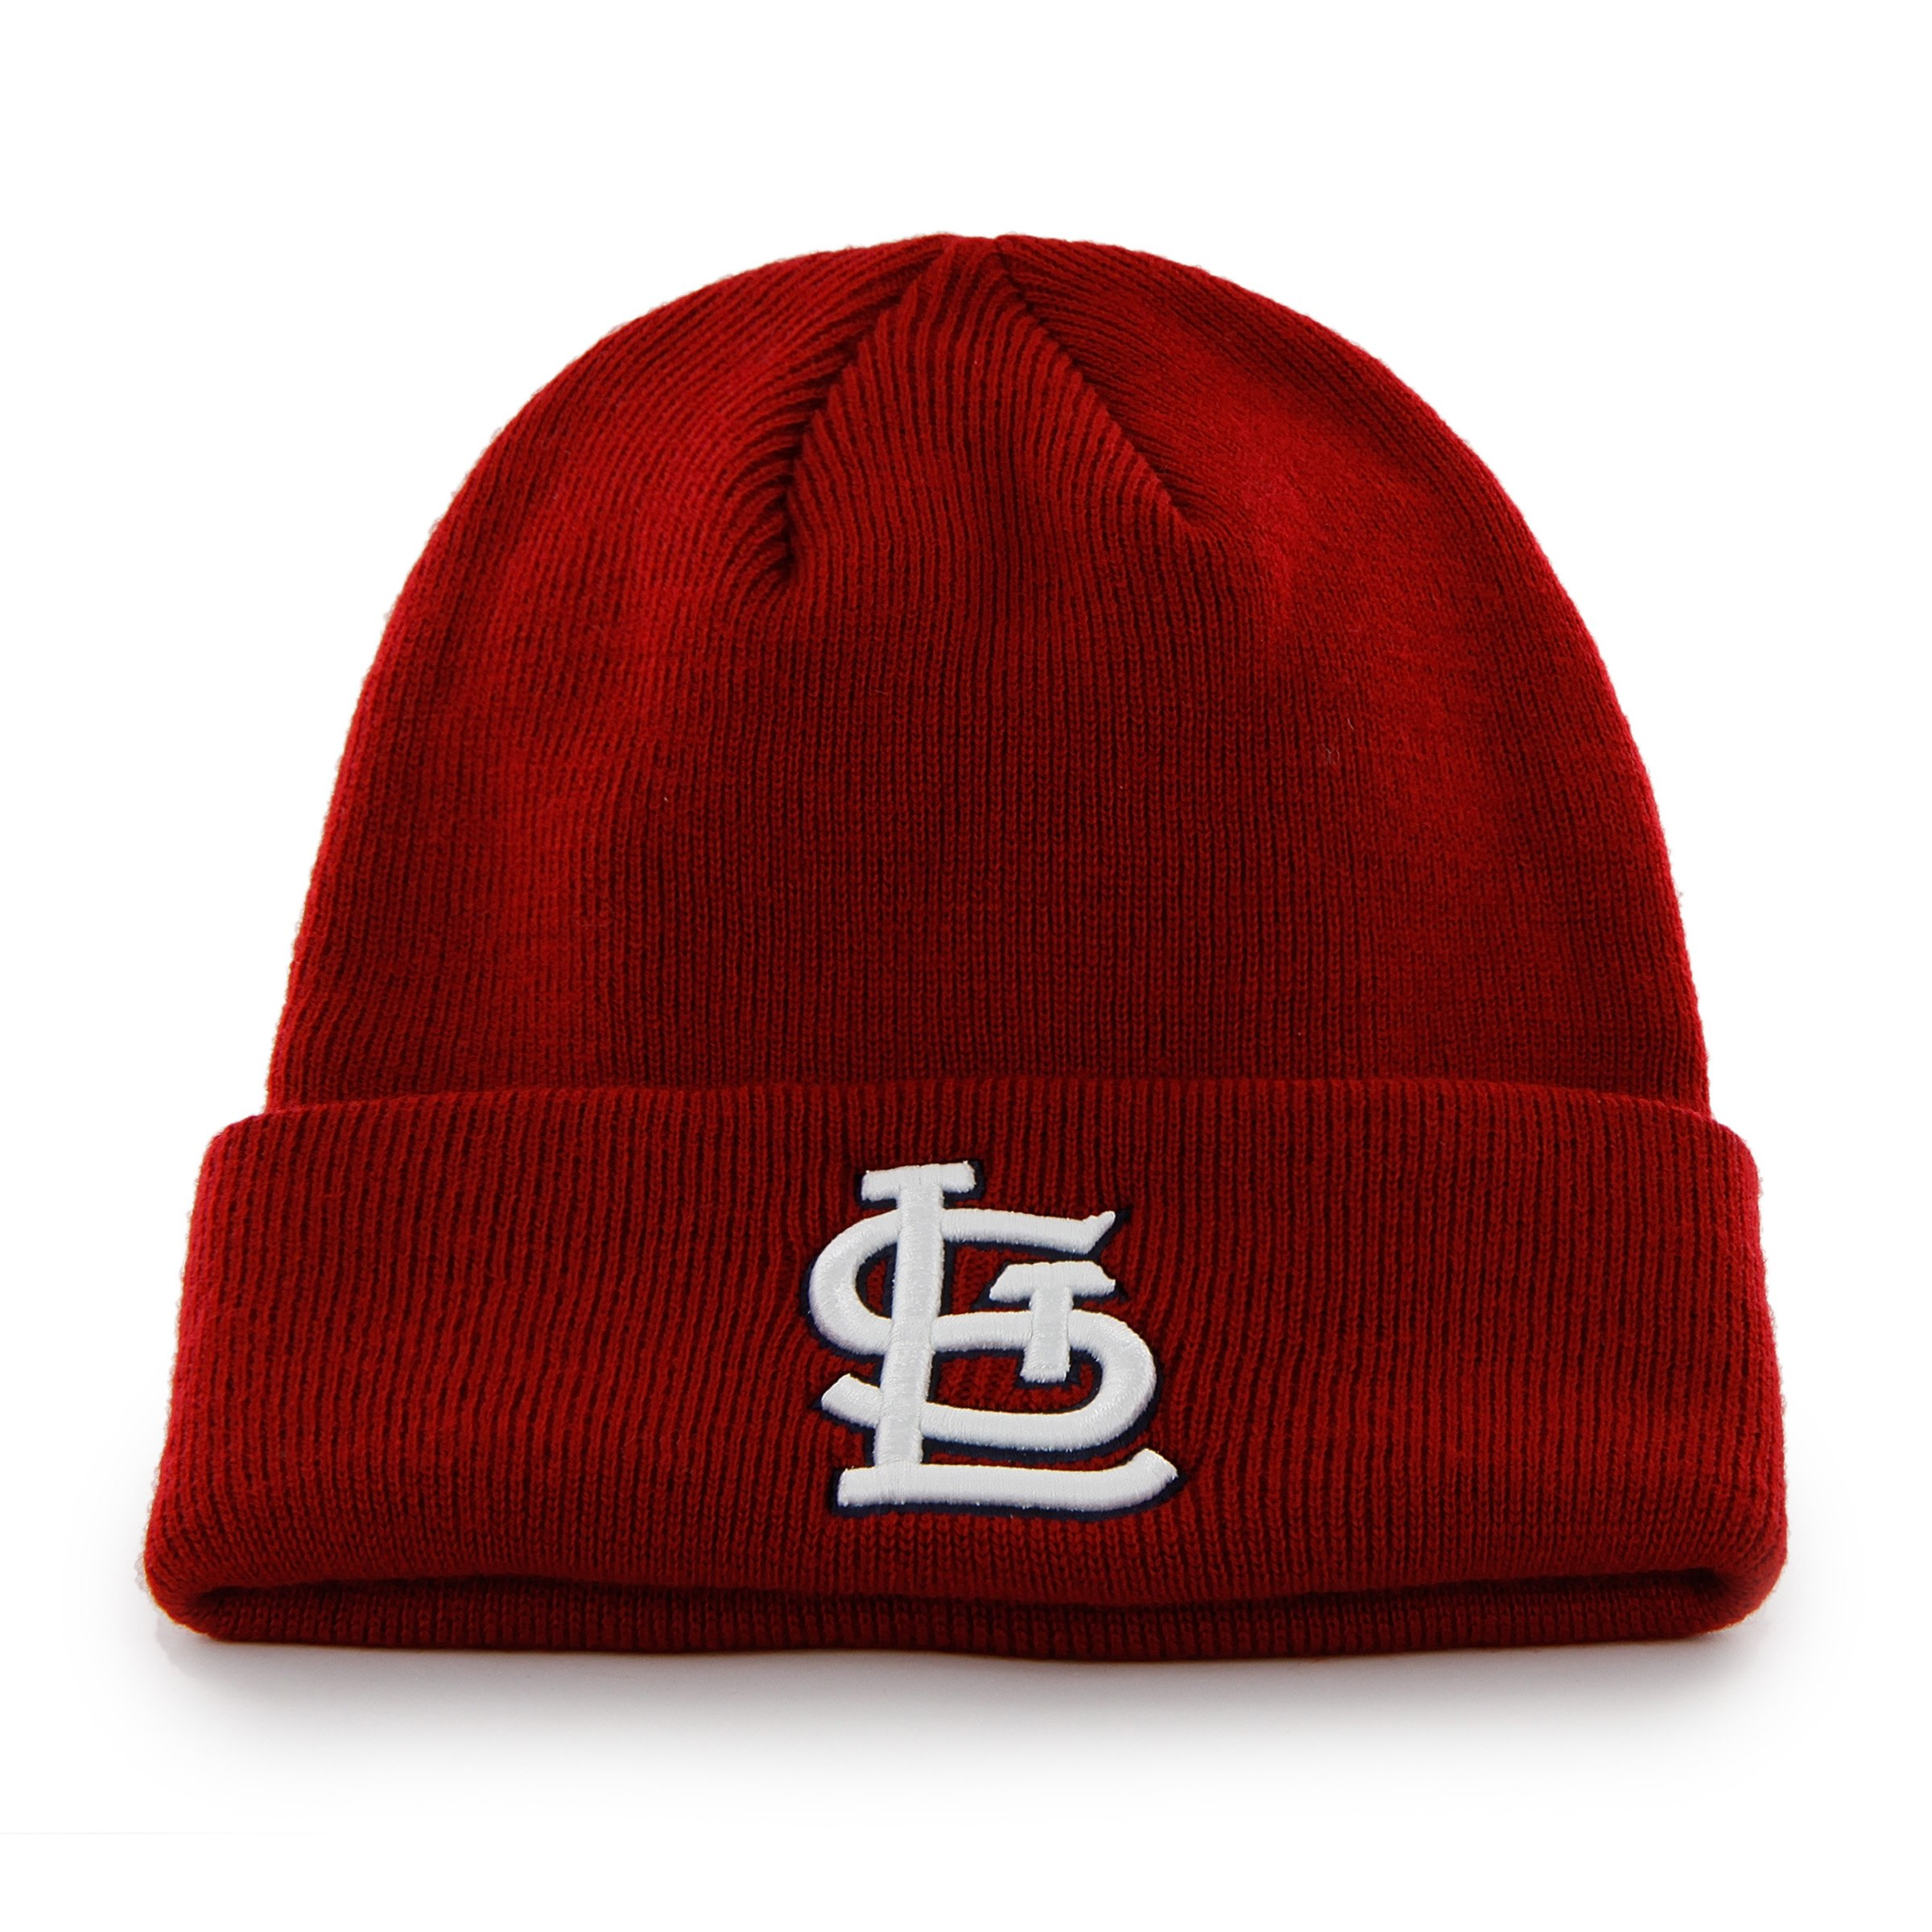 MLB St. Louis Cardinals '47 Raised Cuff Knit Hat, Red, One Size